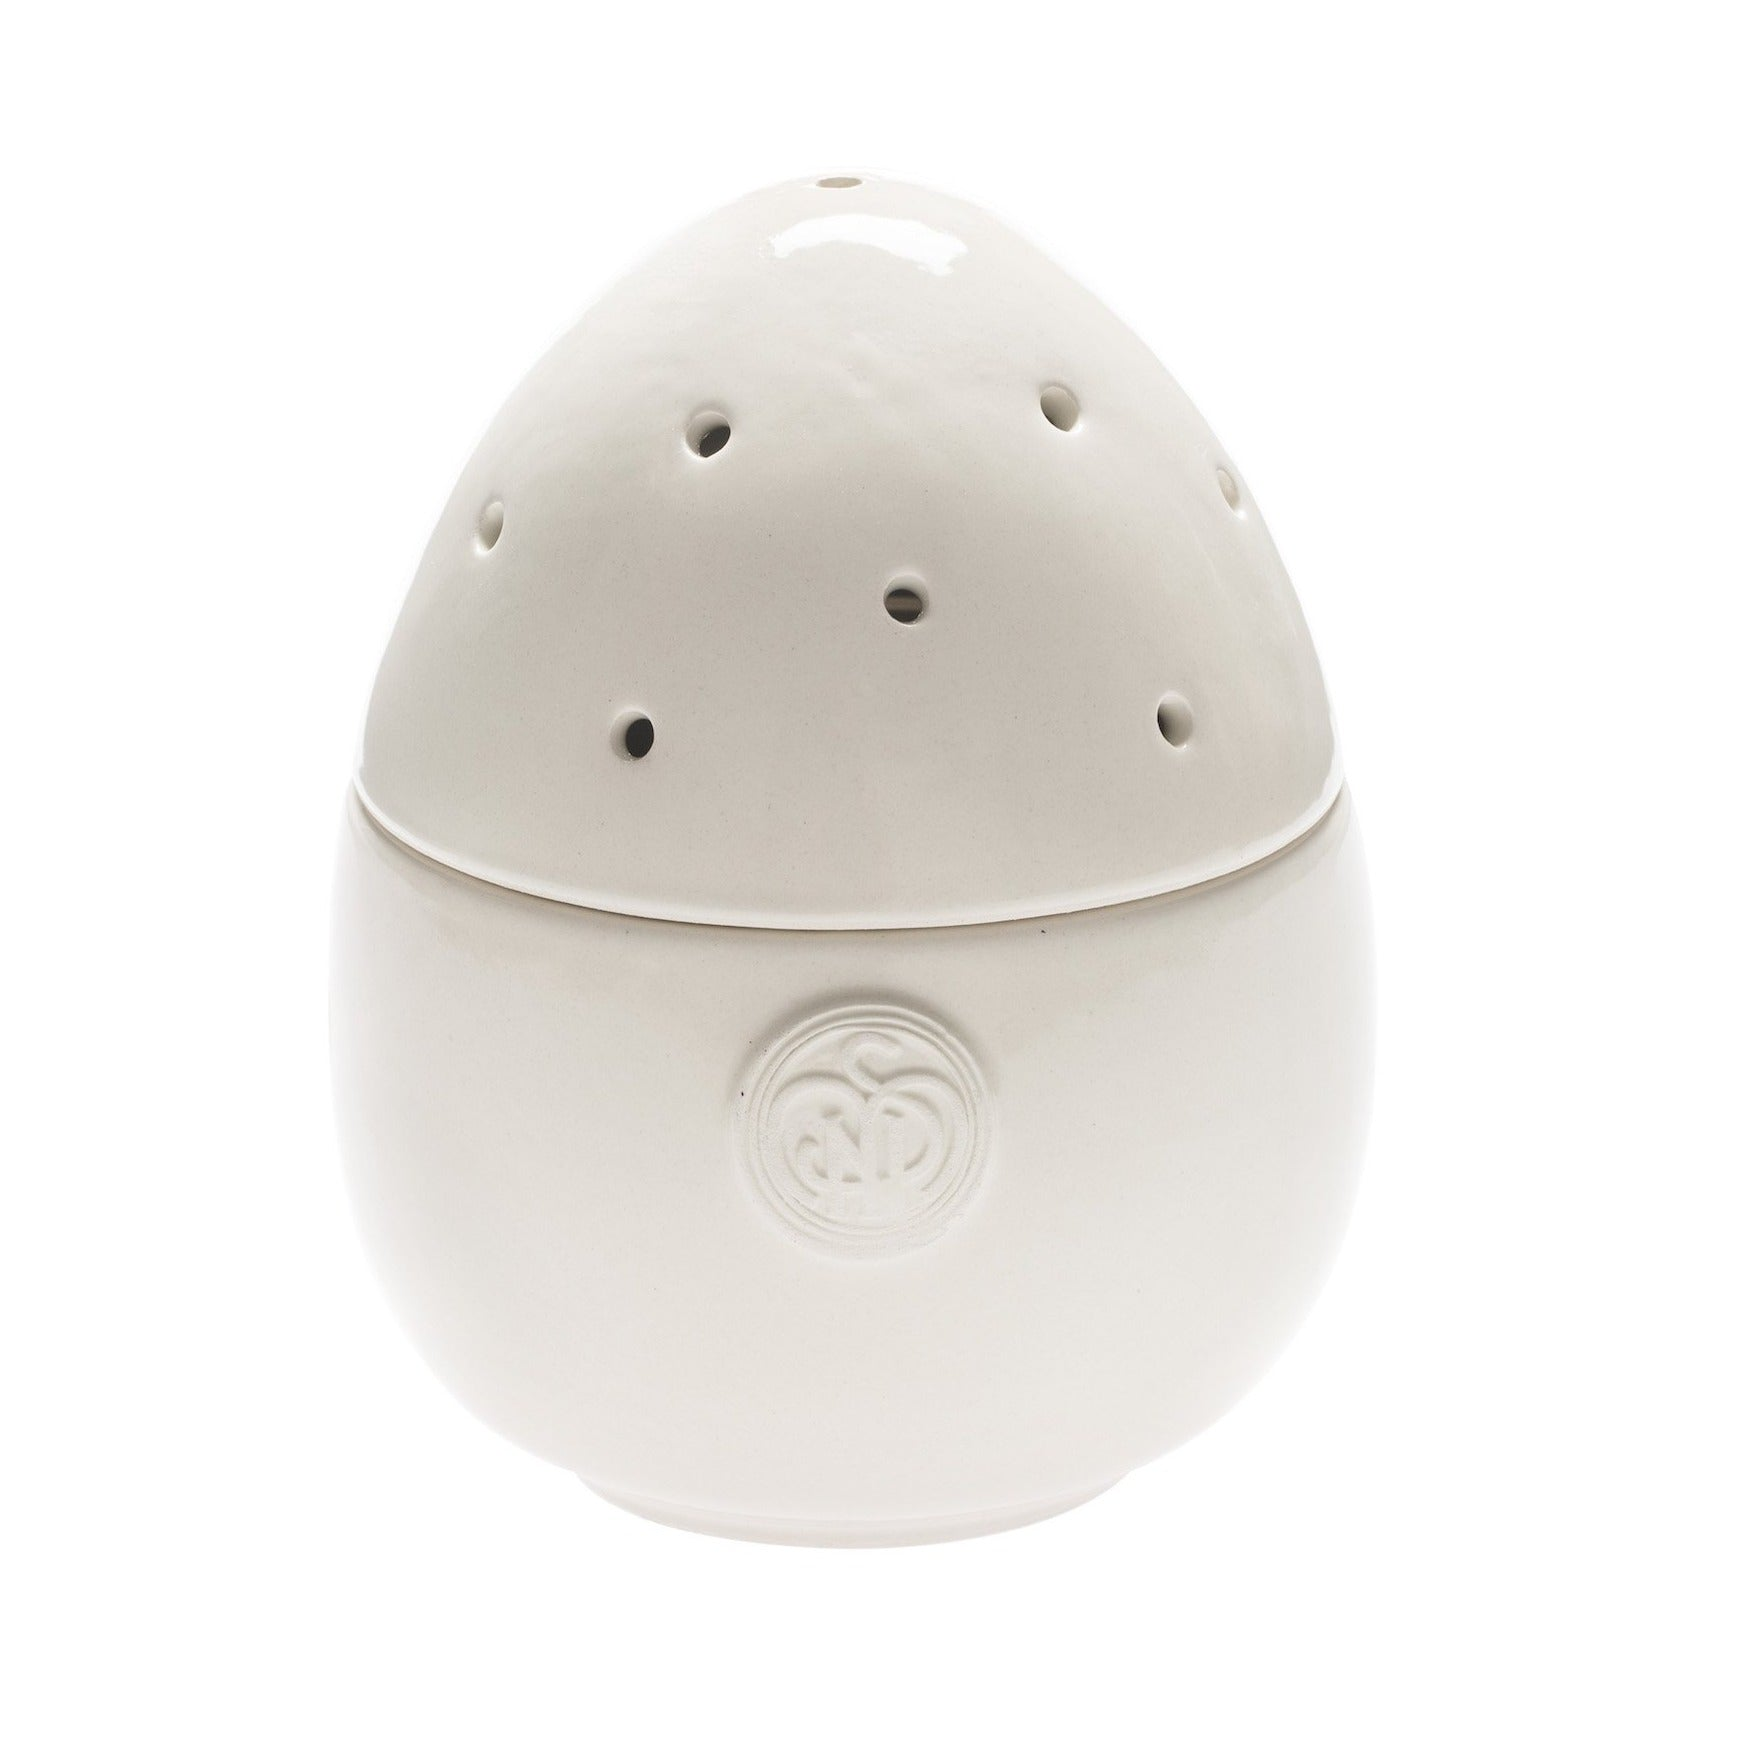 Santa Maria Novella Ceramic Egg Pot Pourri Holder